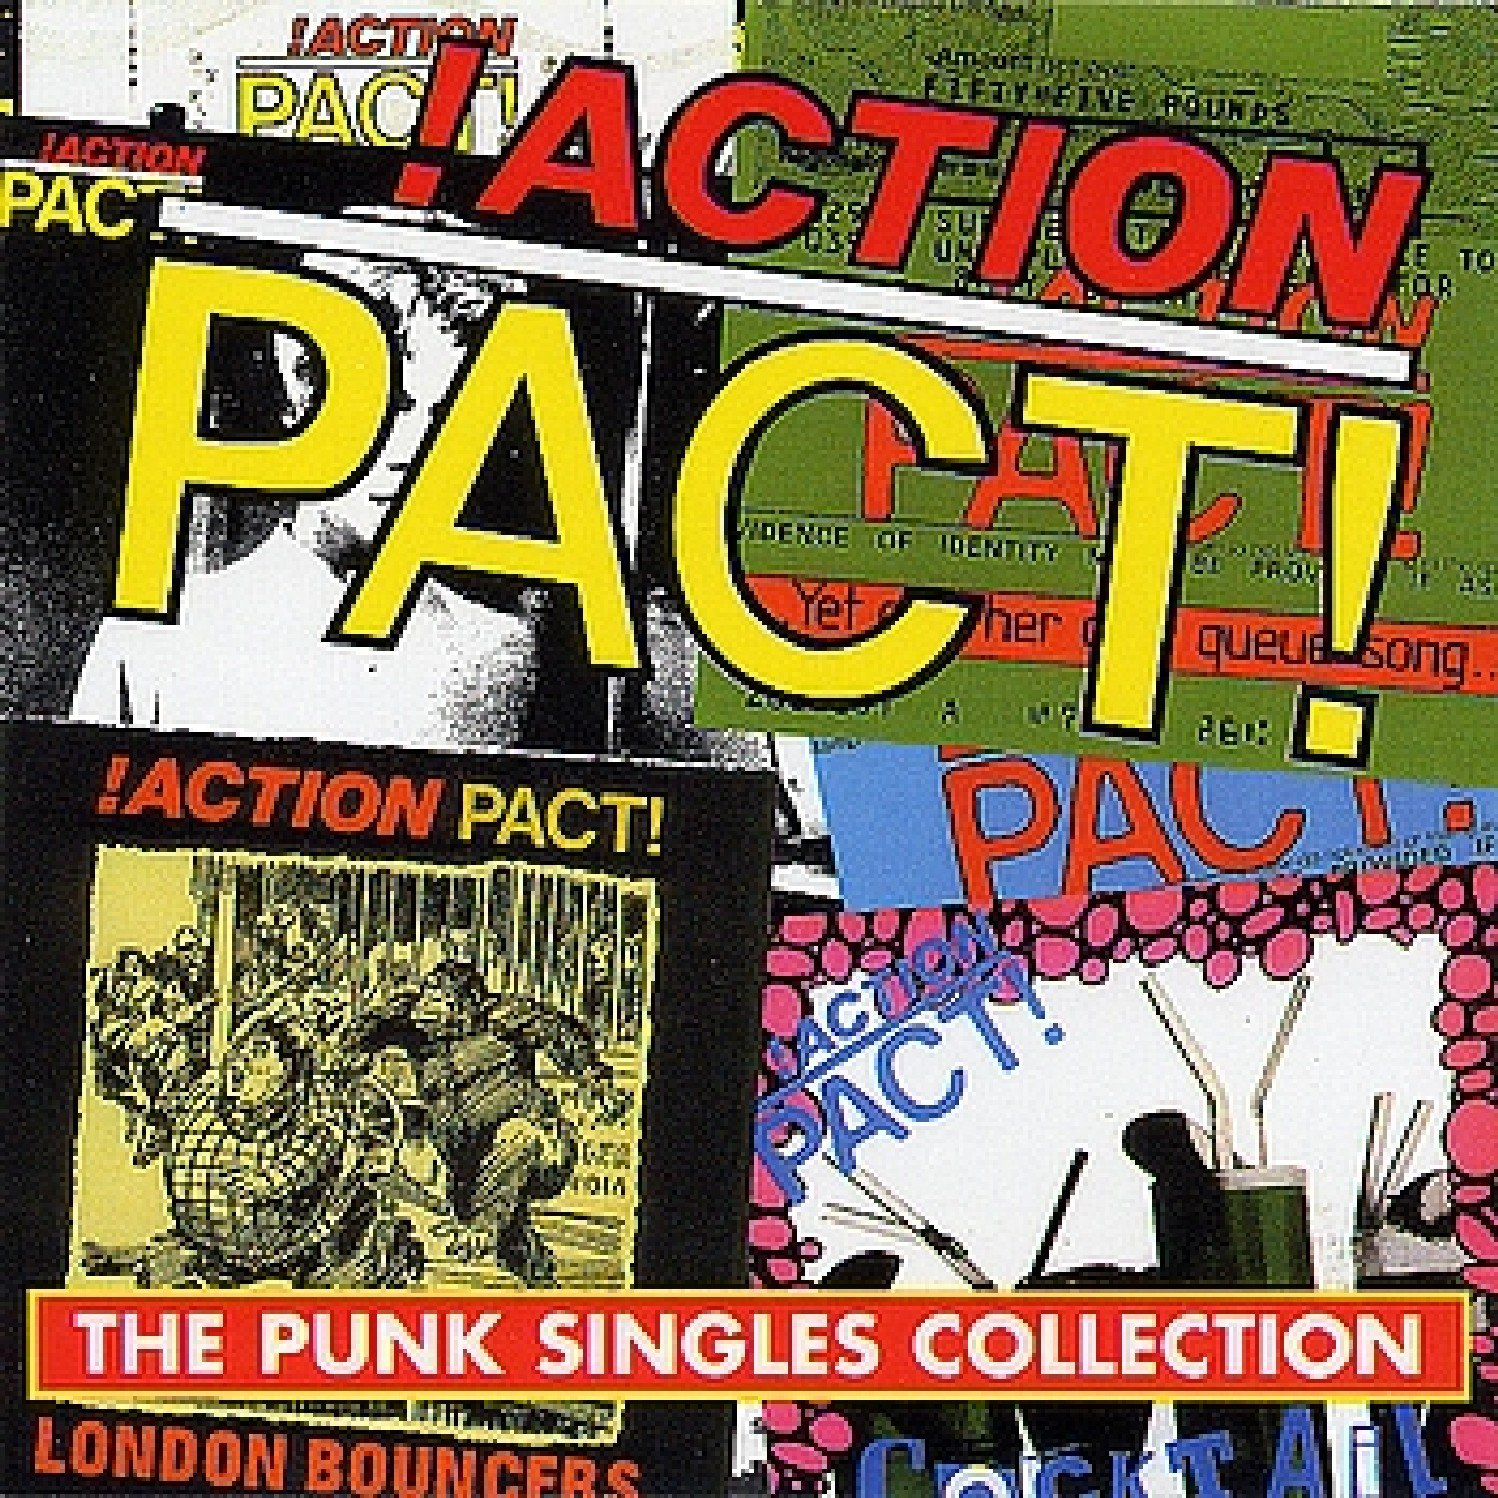 Action Pact - The Punk Singles Collection (1995) [FLAC] Download